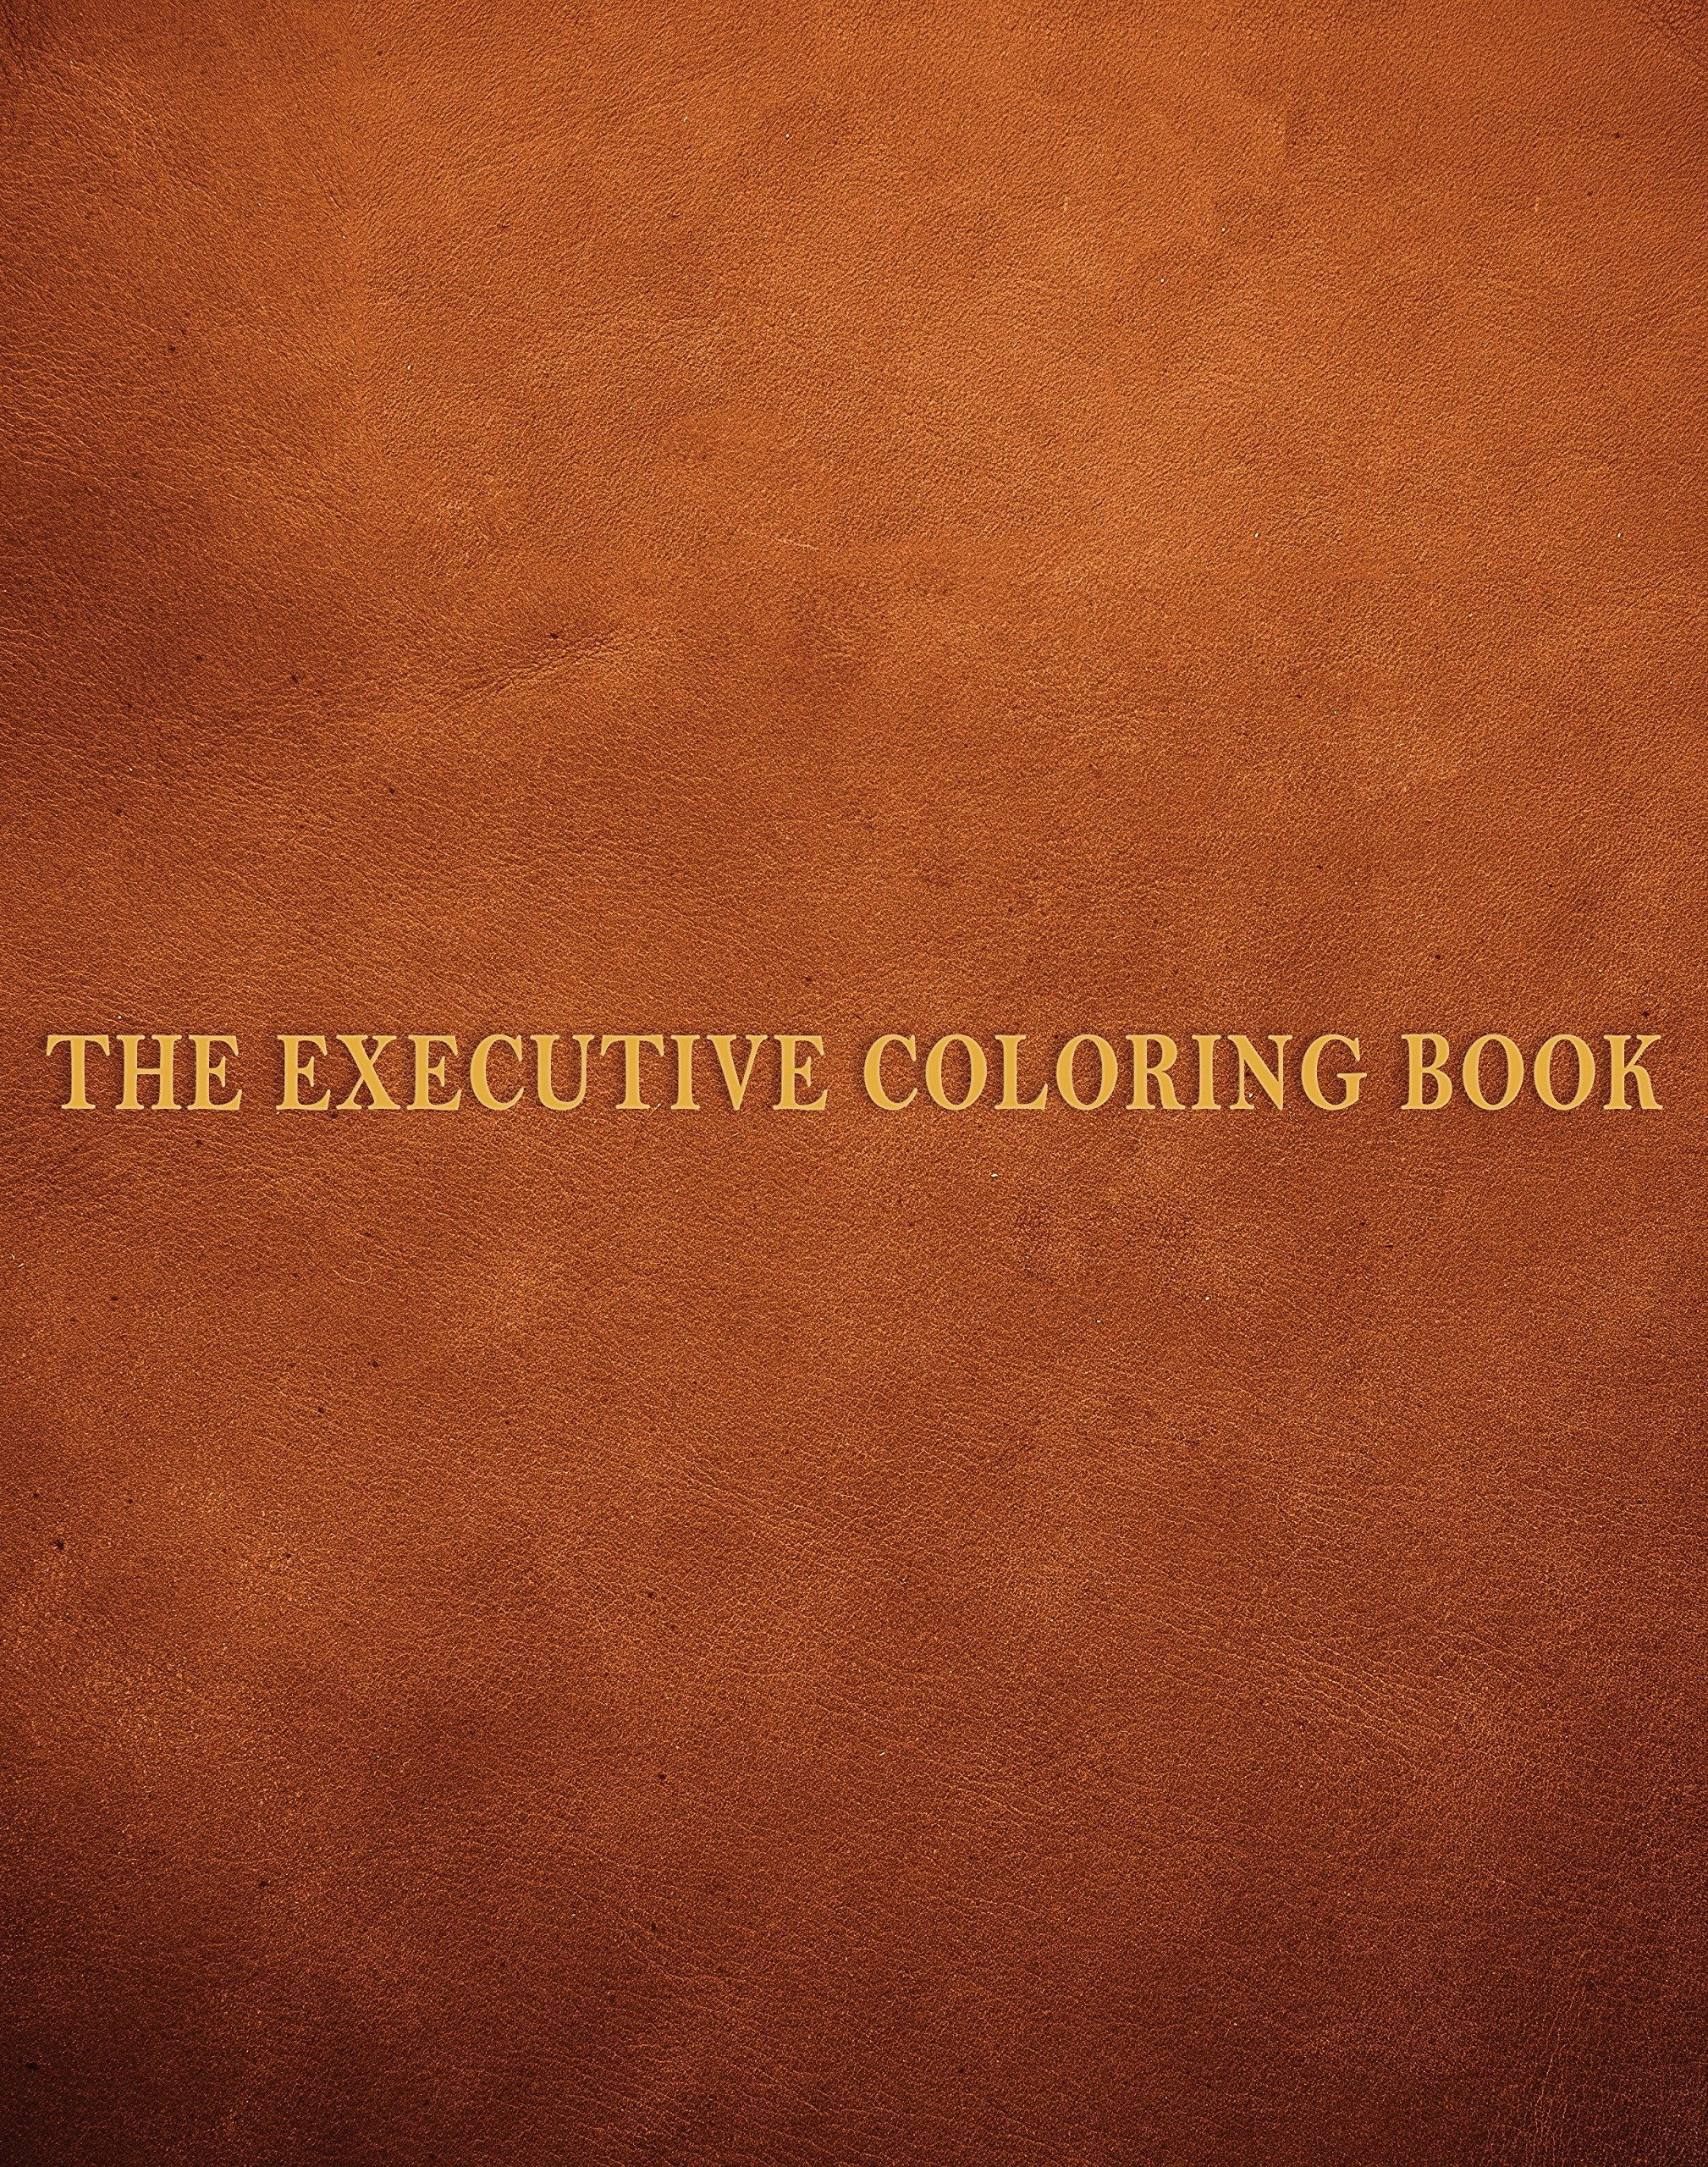 42 Executive Coloring Book Picture HD